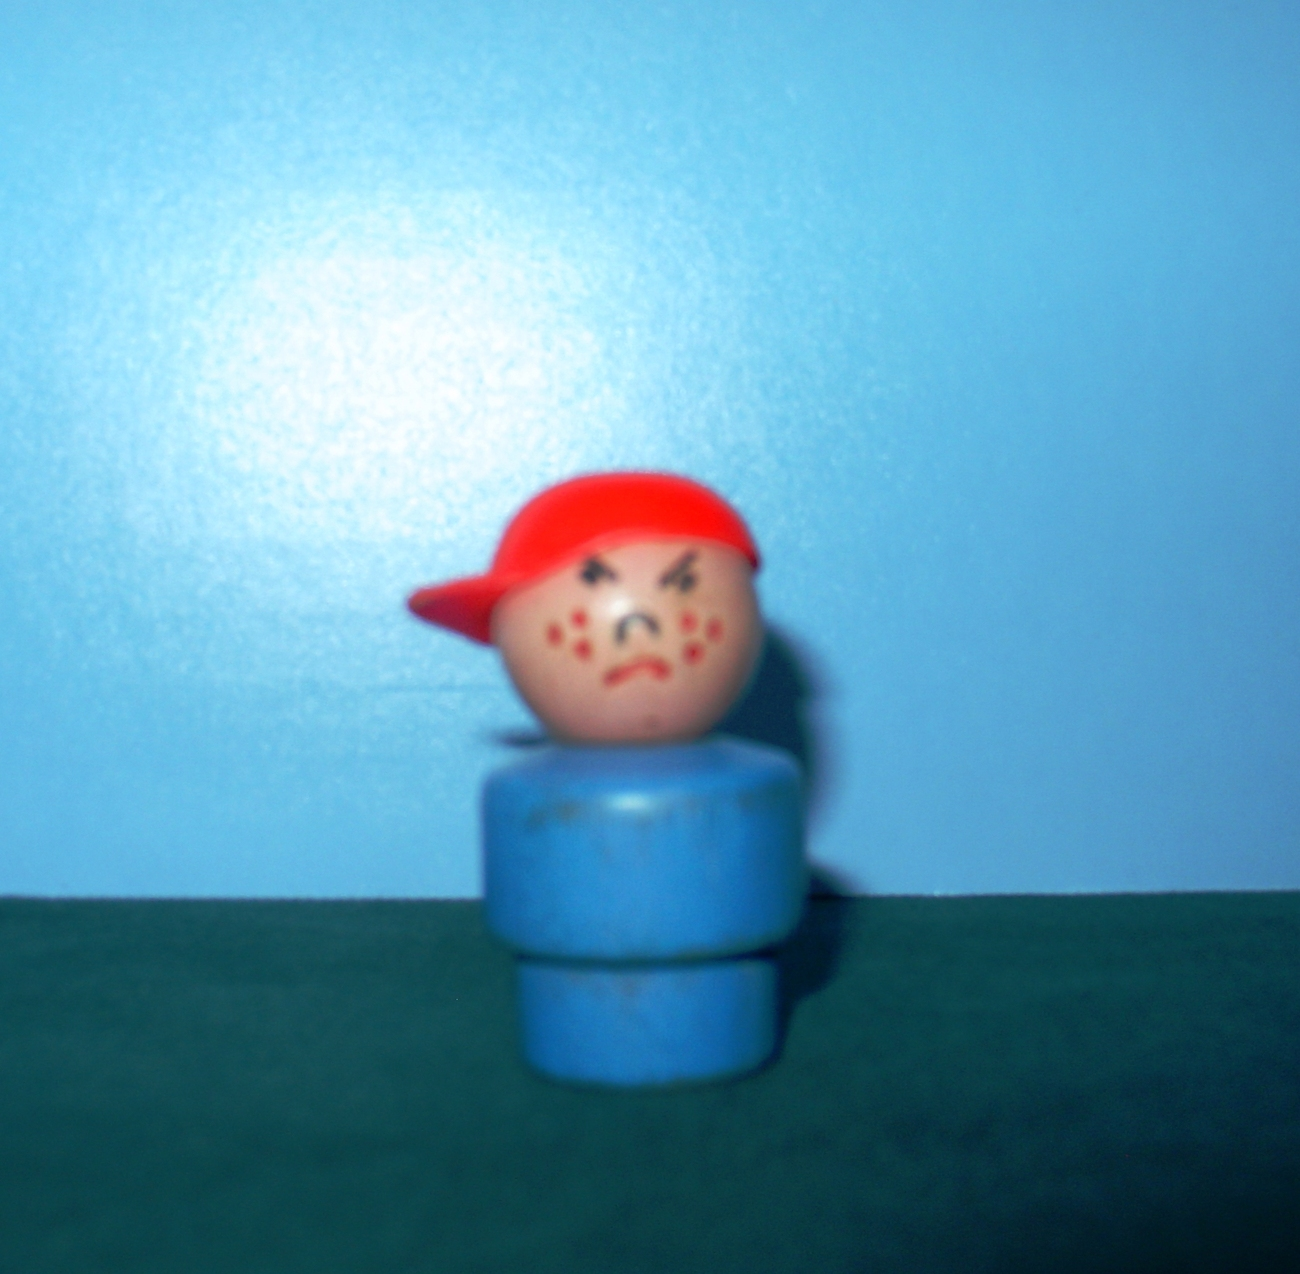 VTG FISHER PRICE LITTLE PEOPLE SCHOOL BUS BULLY W/RED CAP